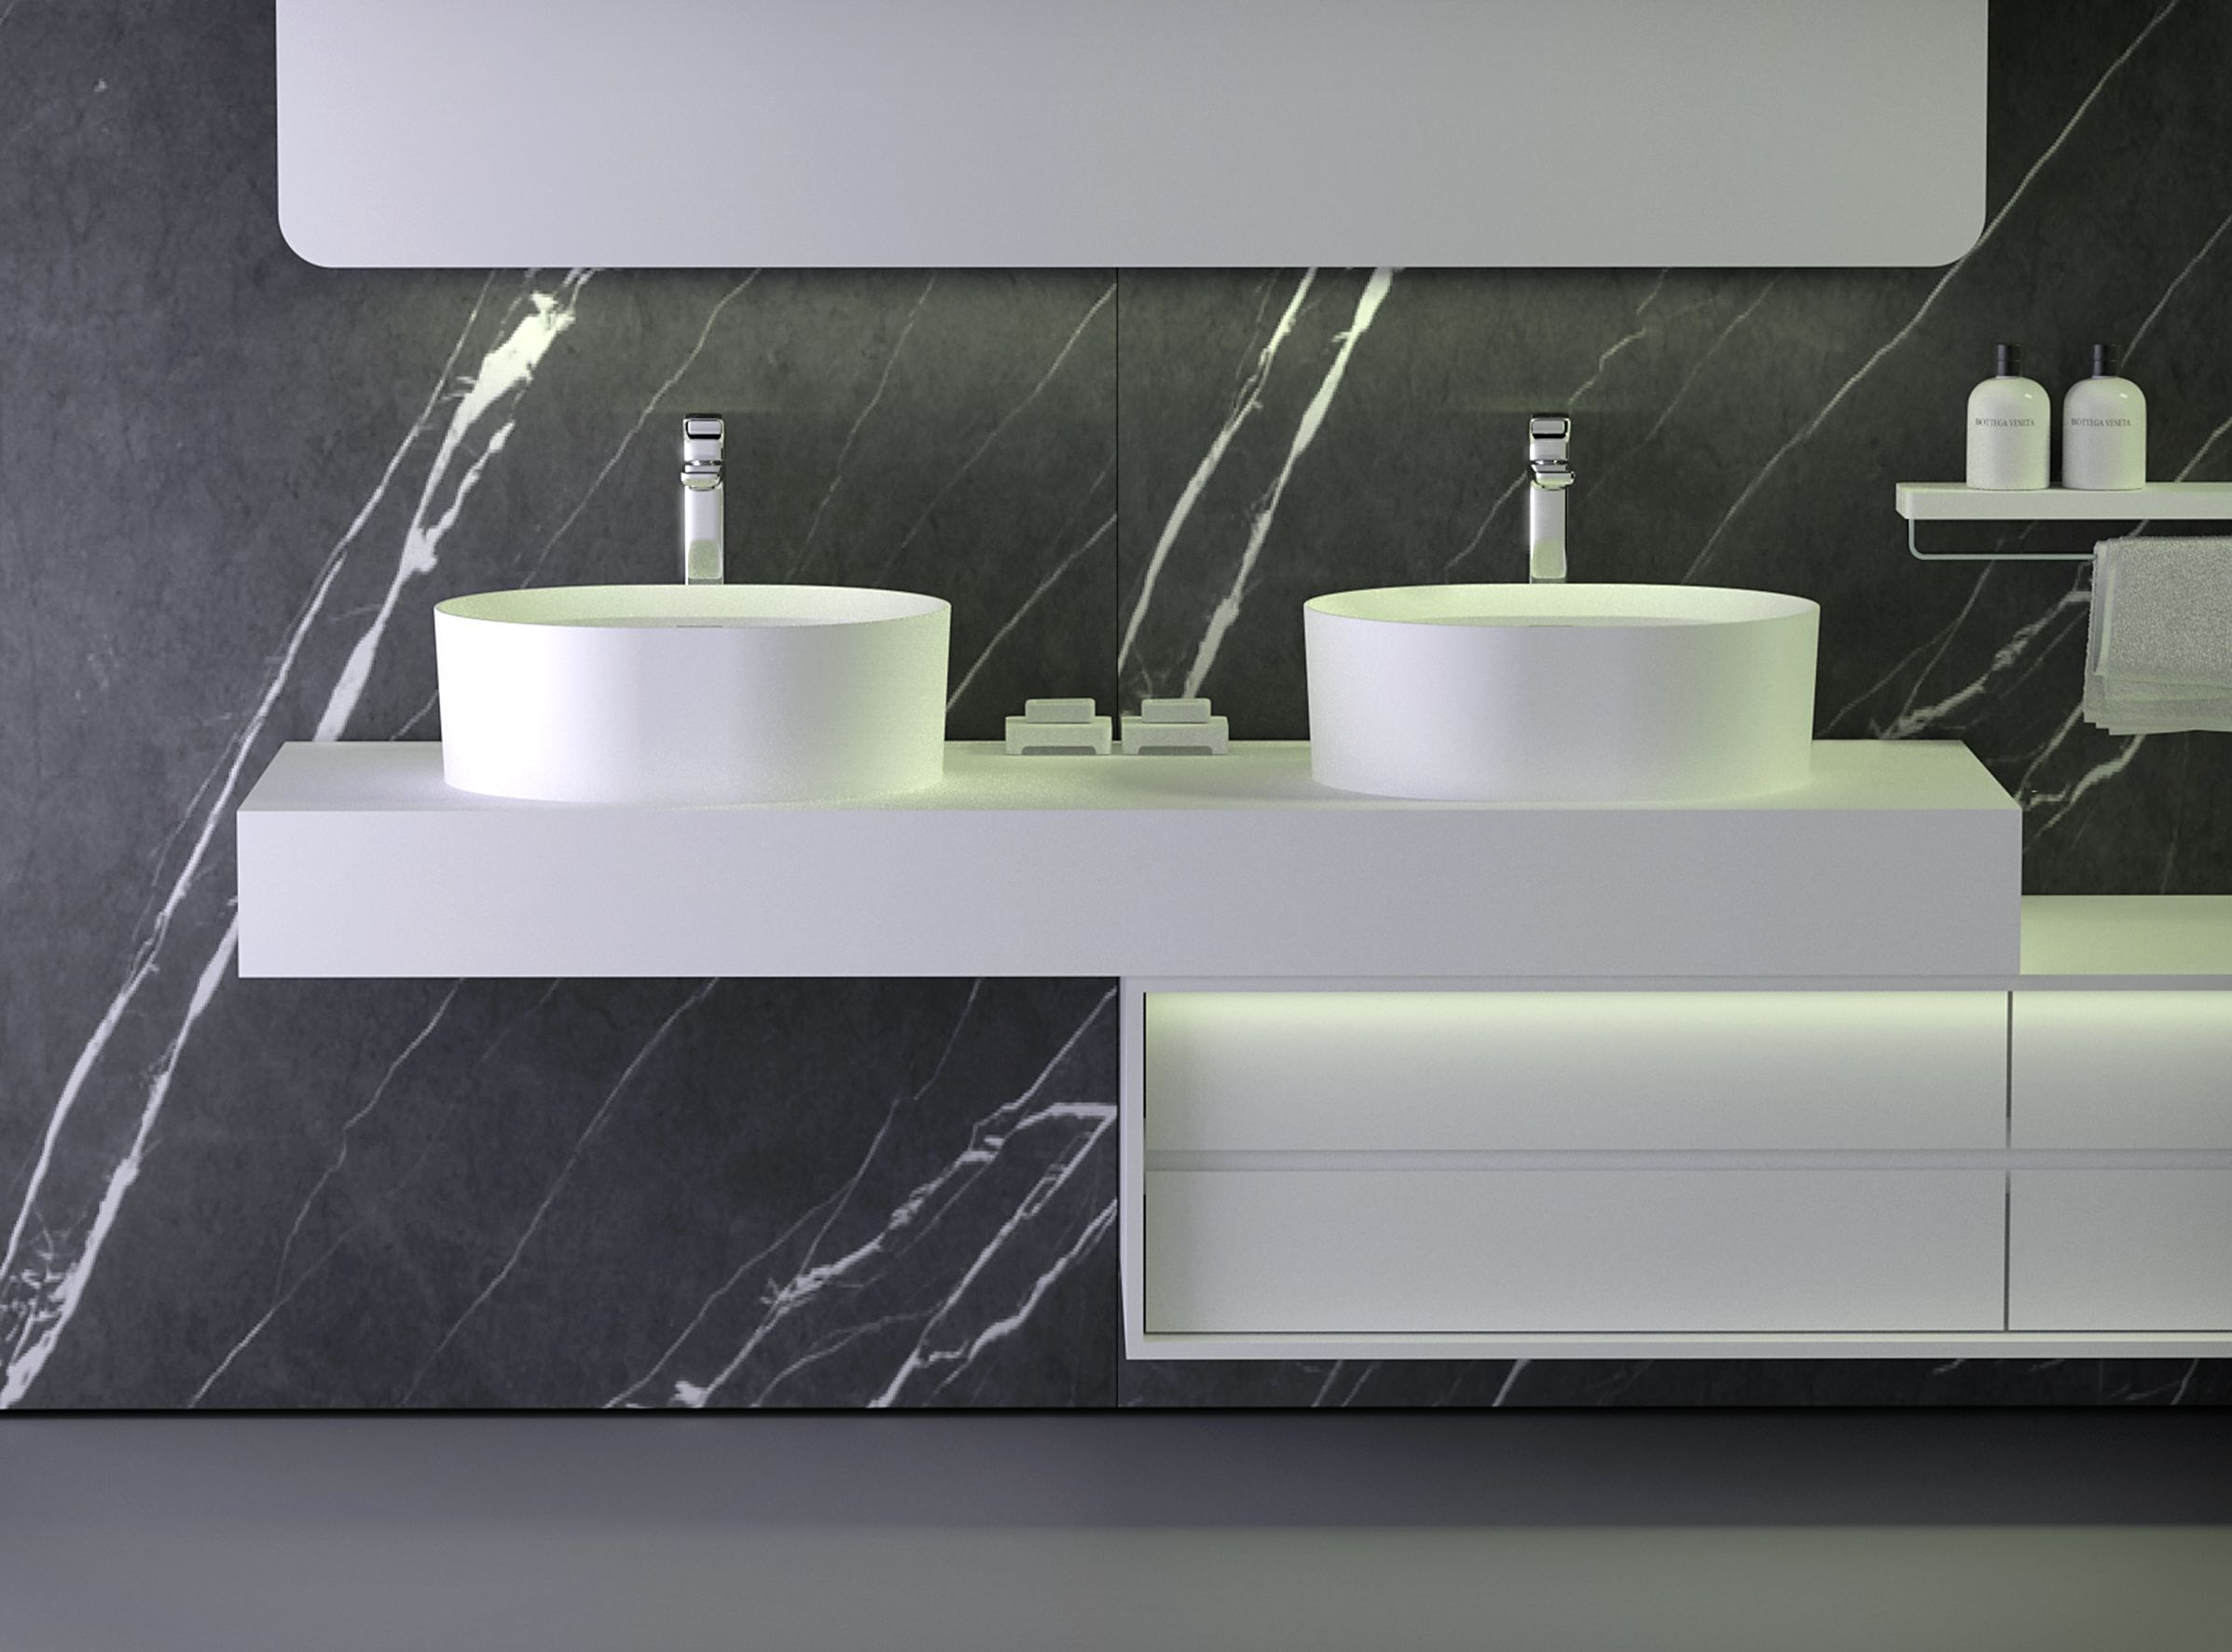 k stone slab counter with solid surface white washbasin and